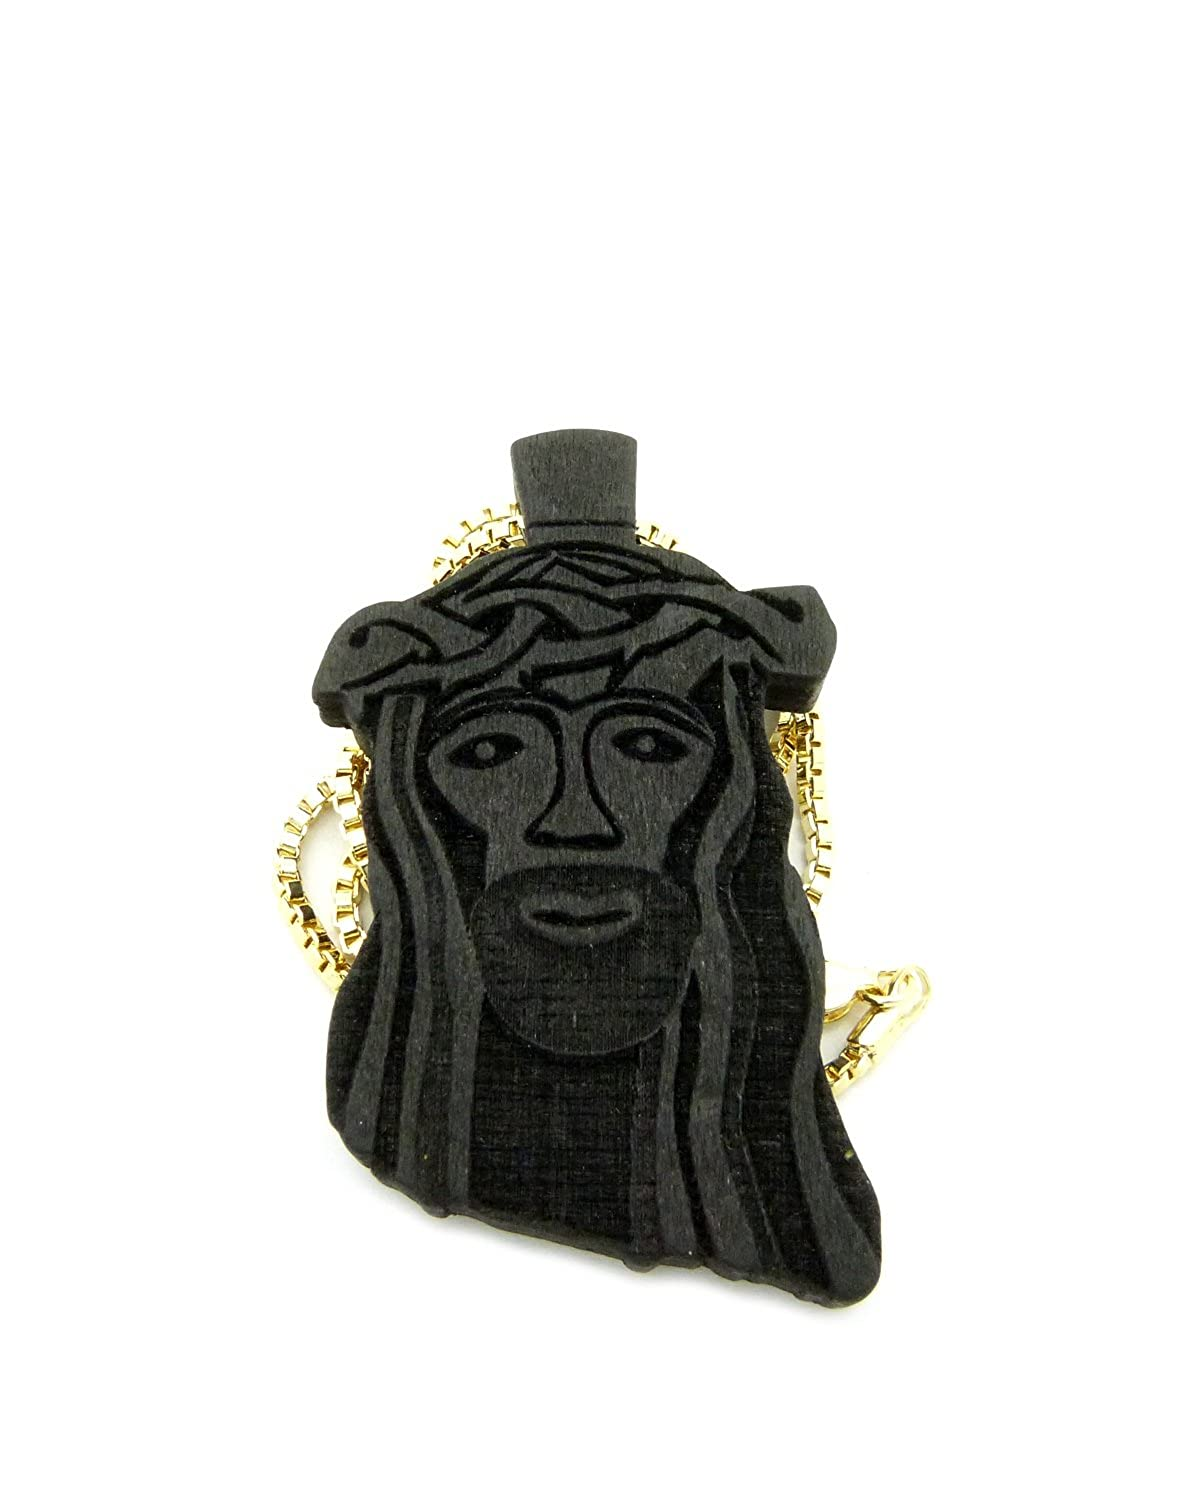 Wooden Jesus Face Pendant With Chain Necklace 2mm 24 Gold Tone